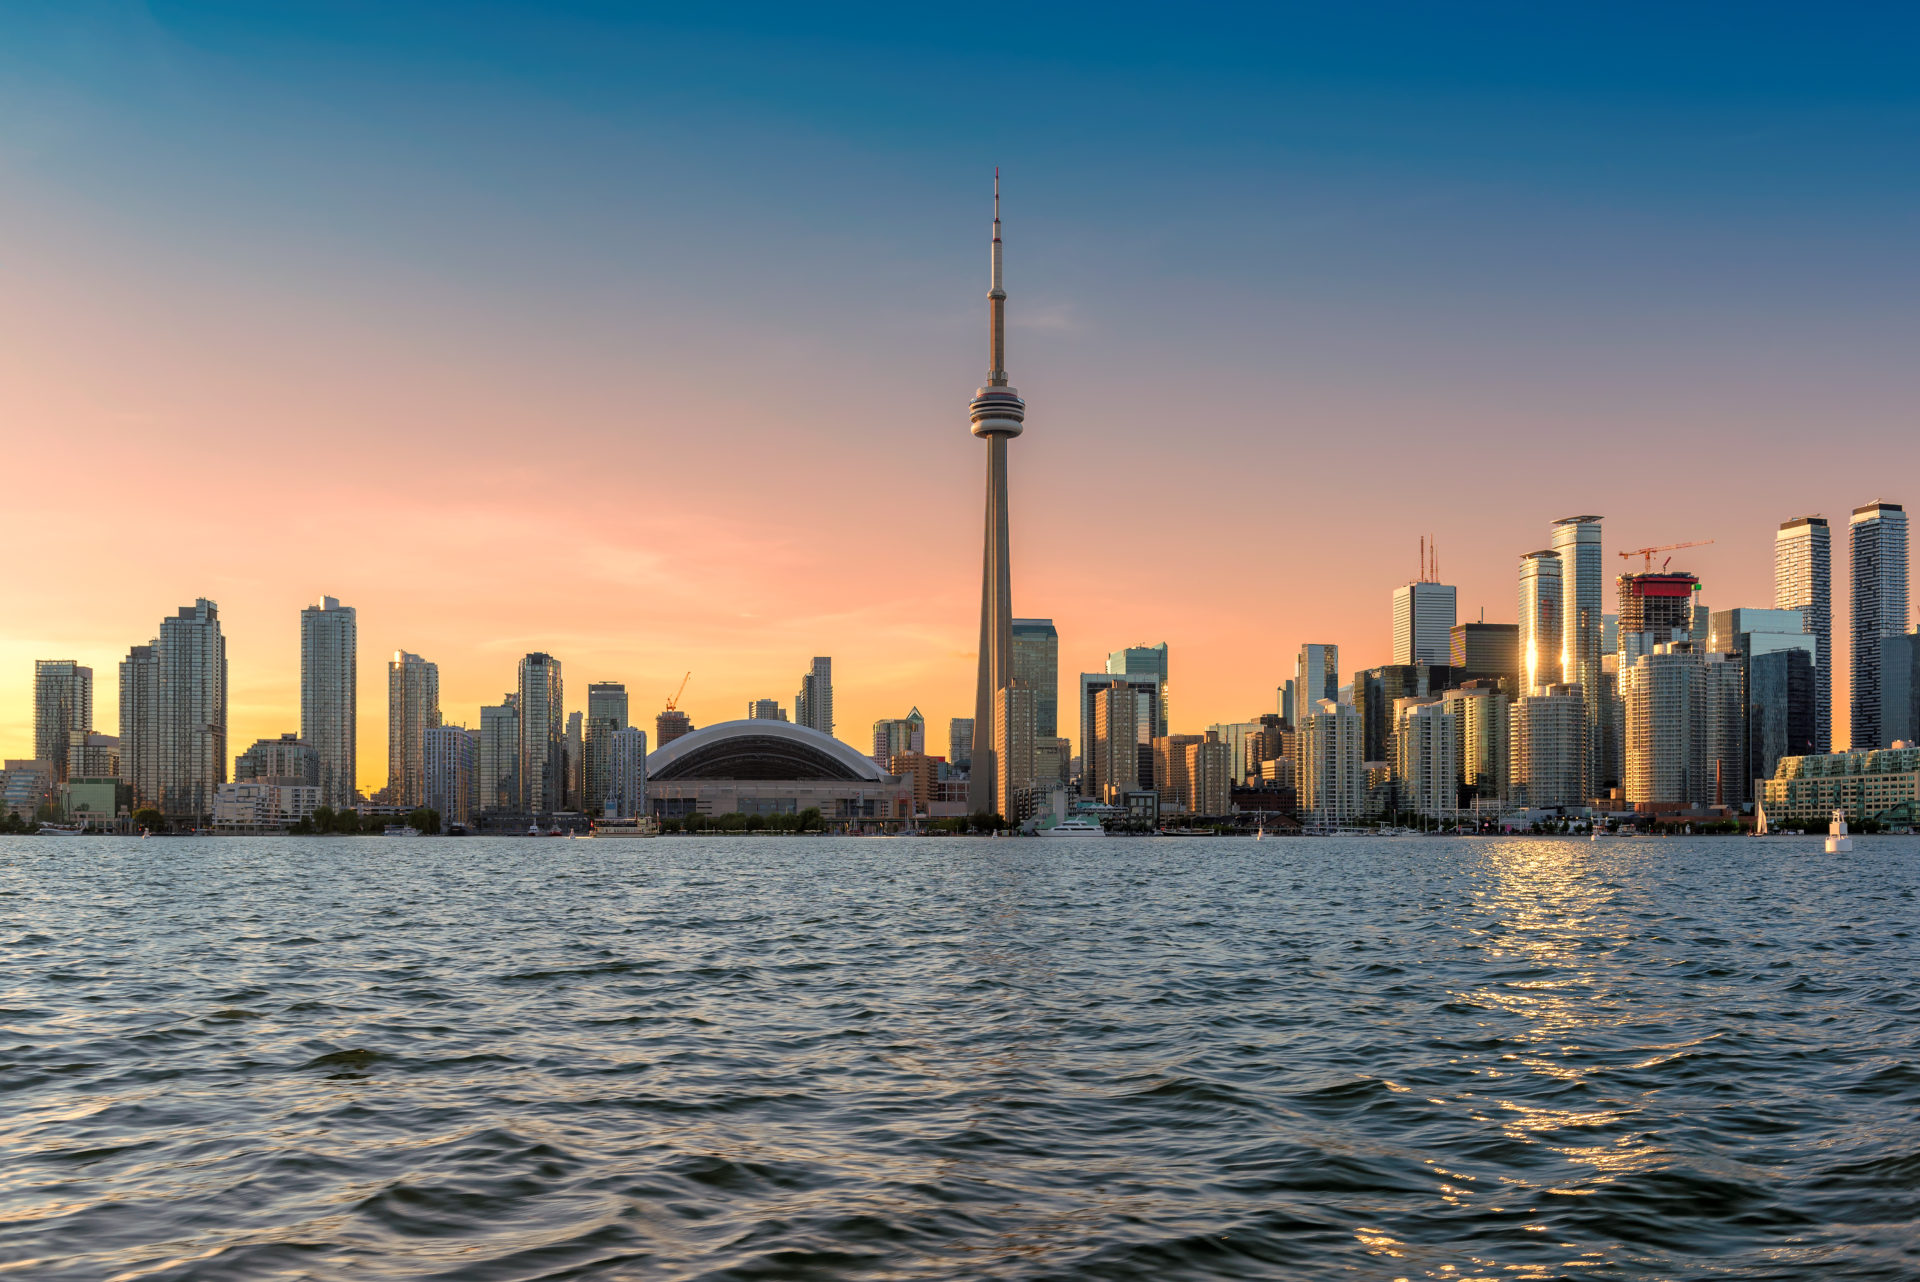 Canada's Ontario Securities Commission Approves Bitcoin Mutual Fund